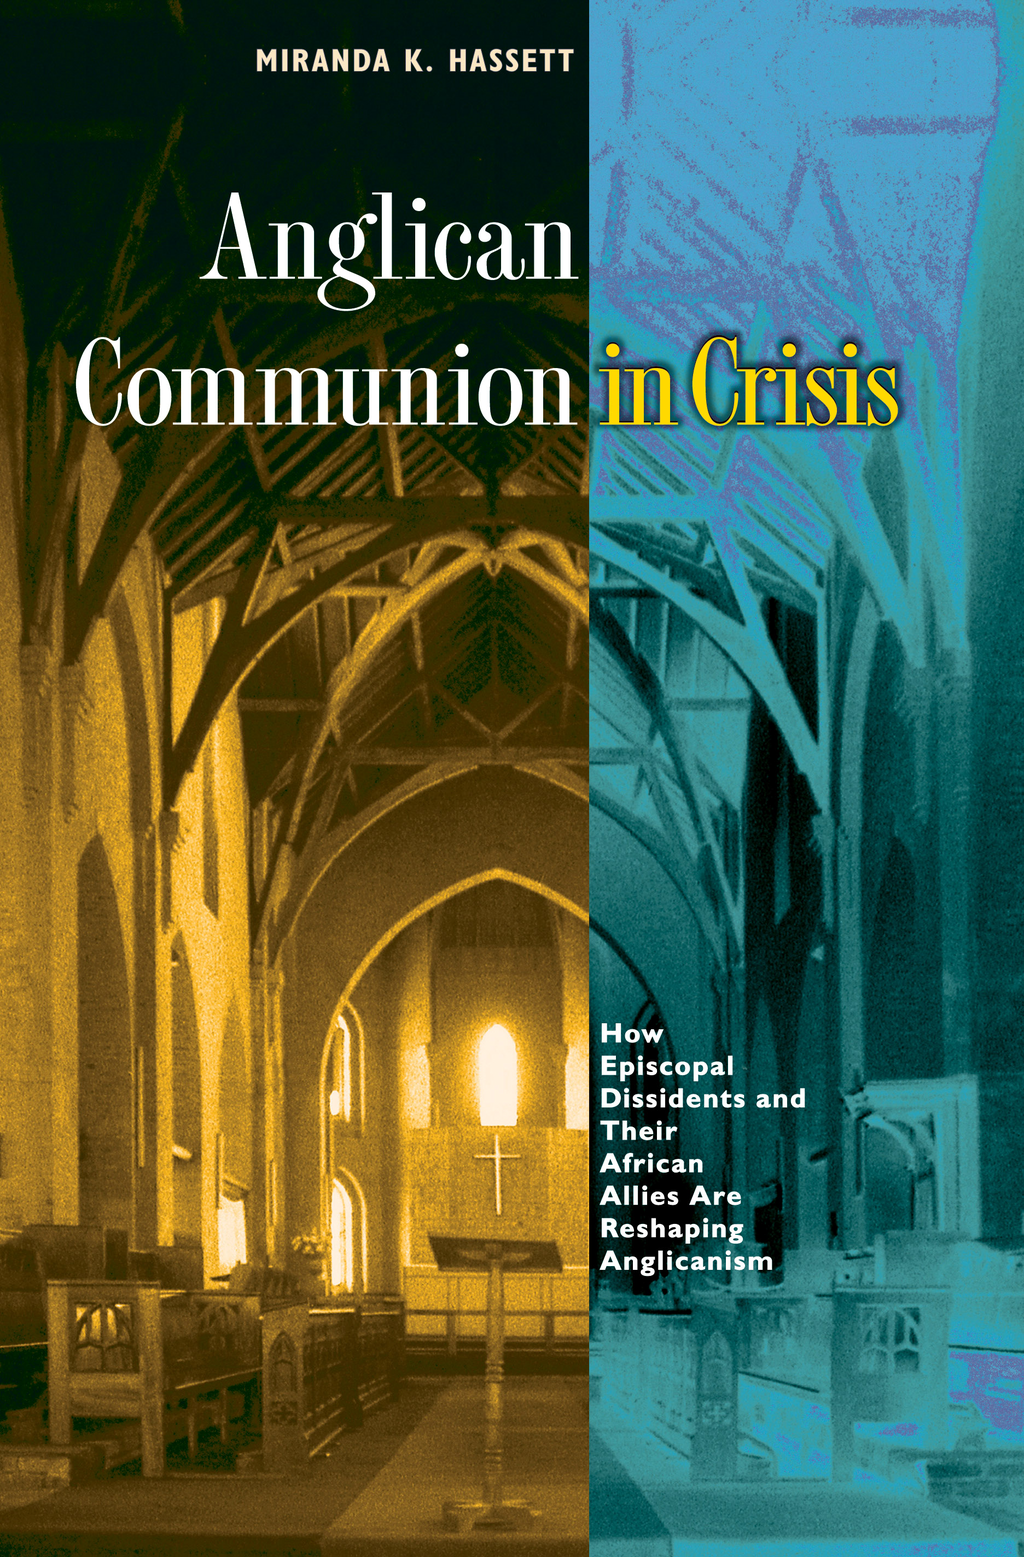 Anglican Communion in Crisis How Episcopal Dissidents and Their African Allies Are Reshaping Anglicanism